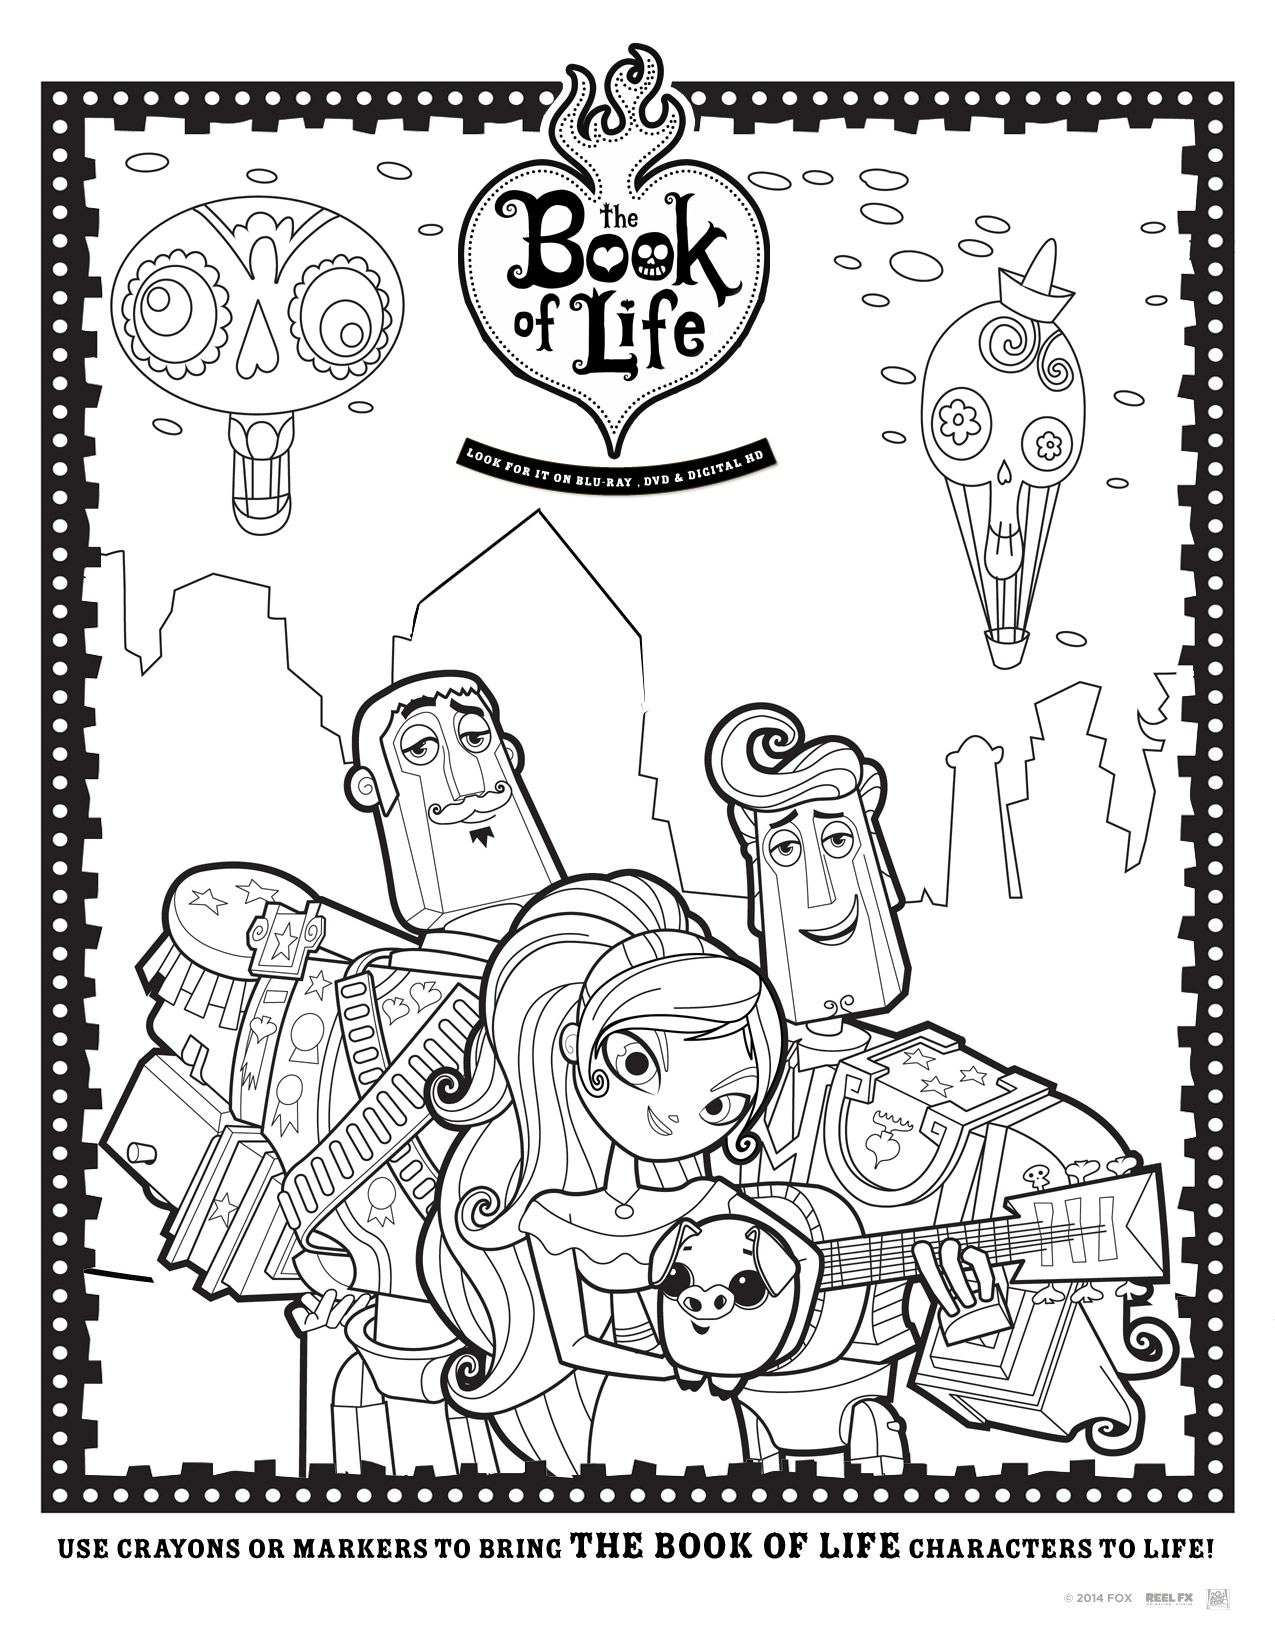 Book of life for coloring - Coloring Sheet 2 Coloring Sheet 1 The Book Of Life